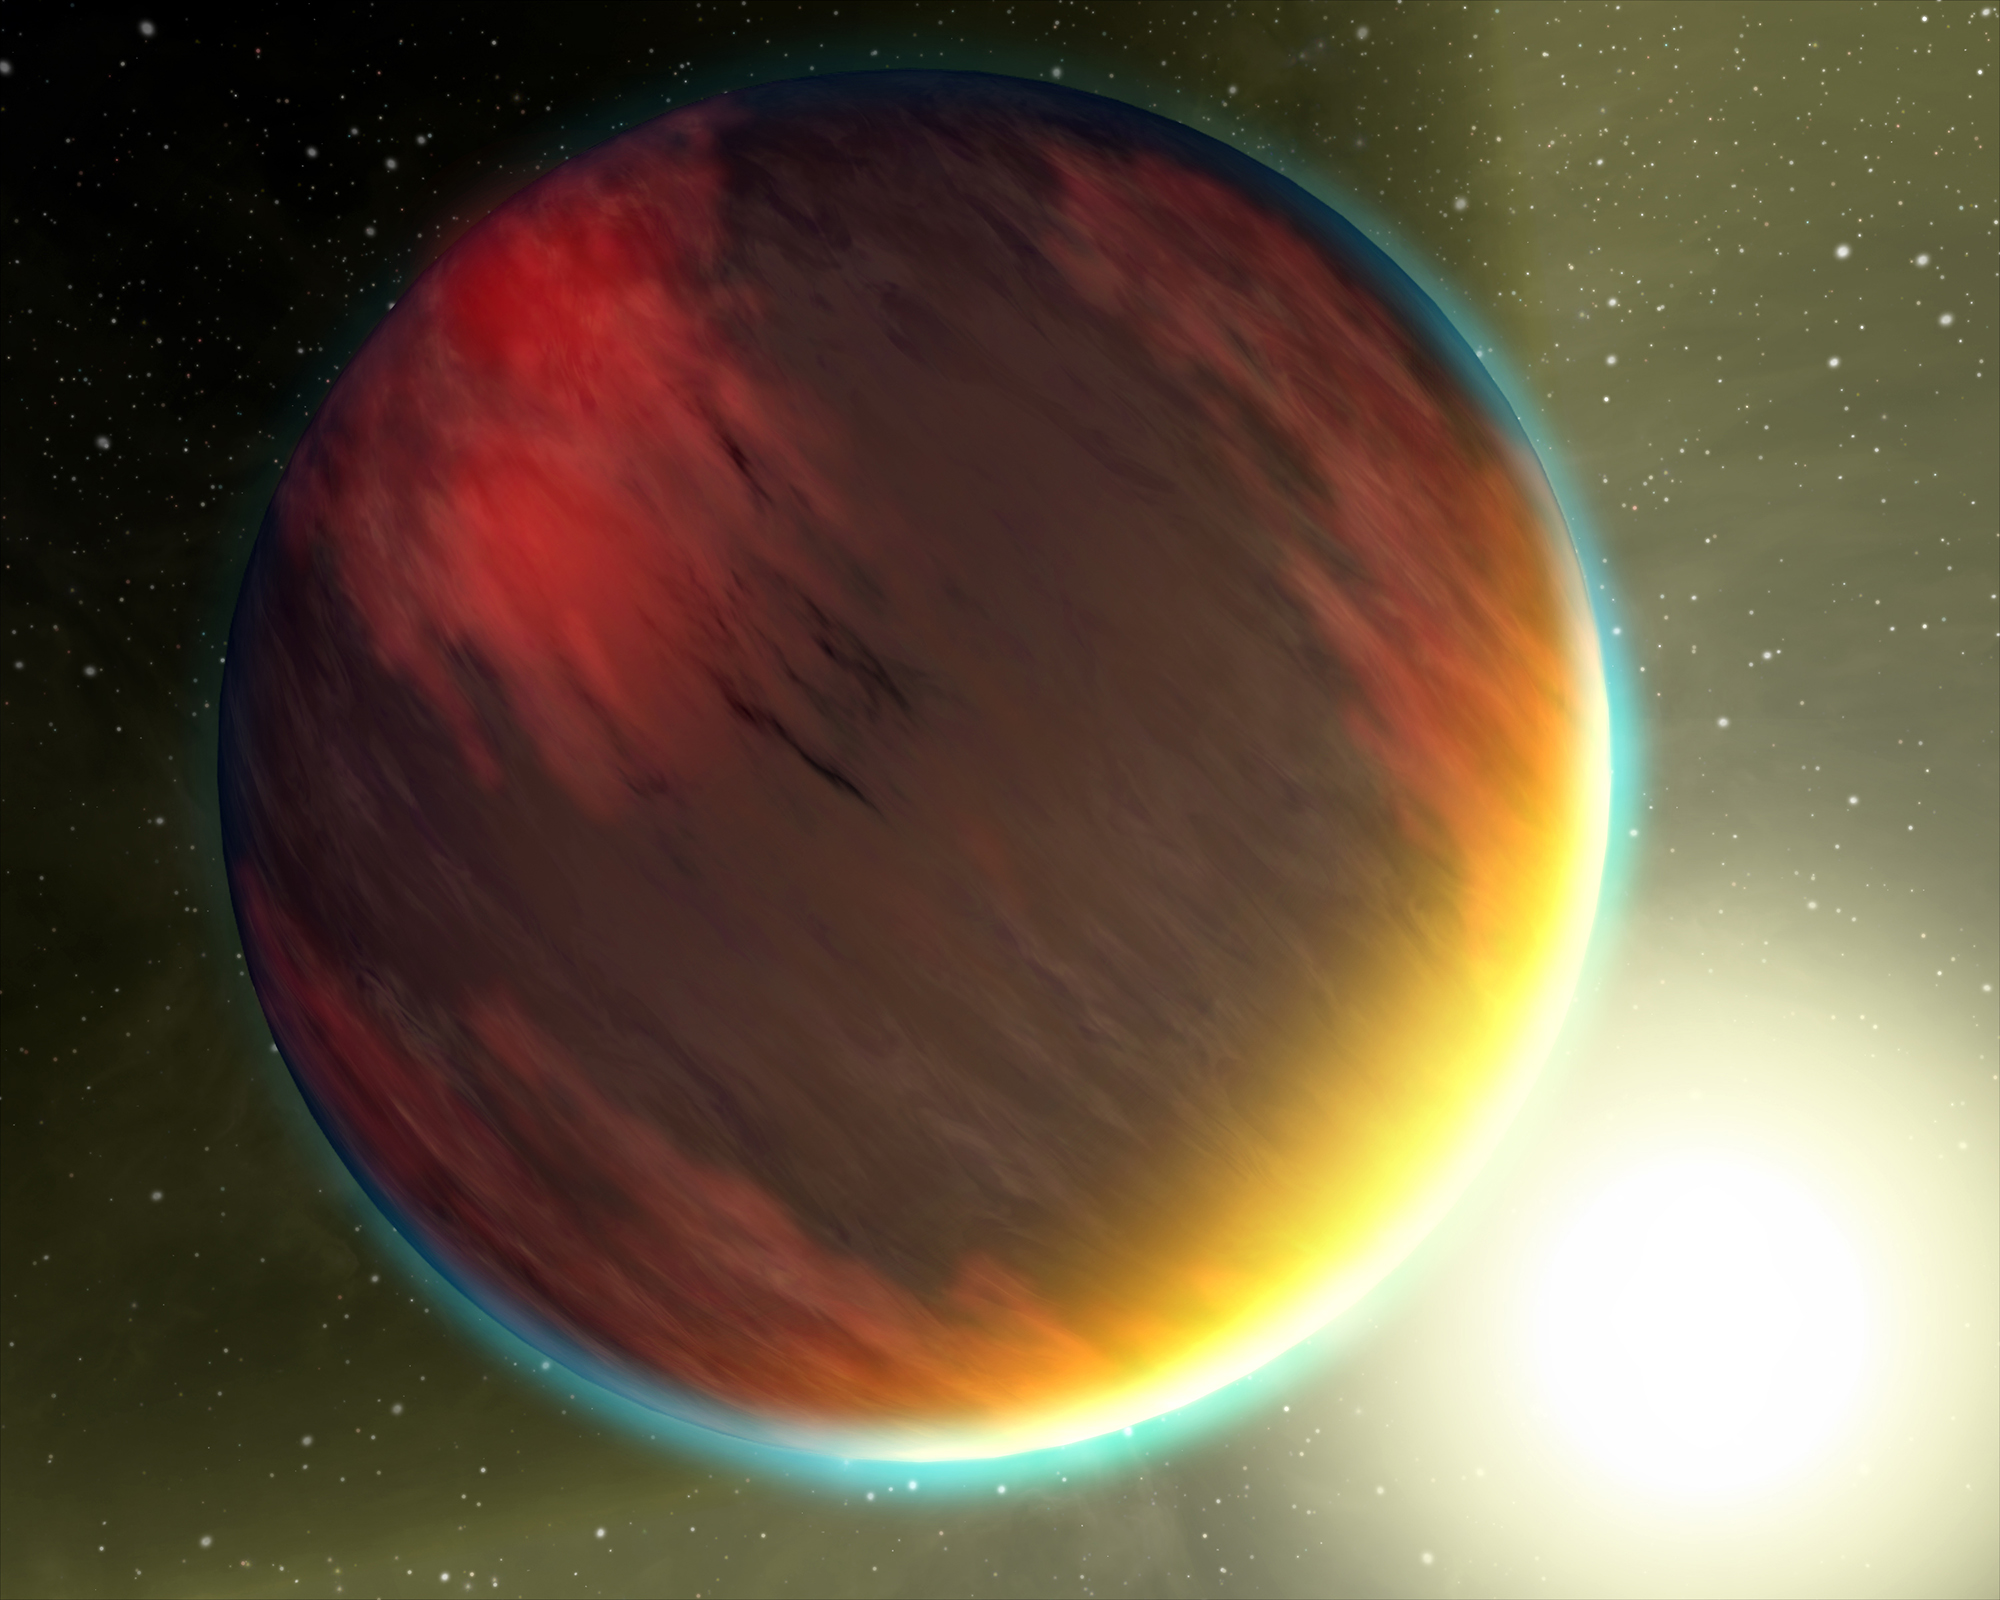 newest planets discovered - photo #47